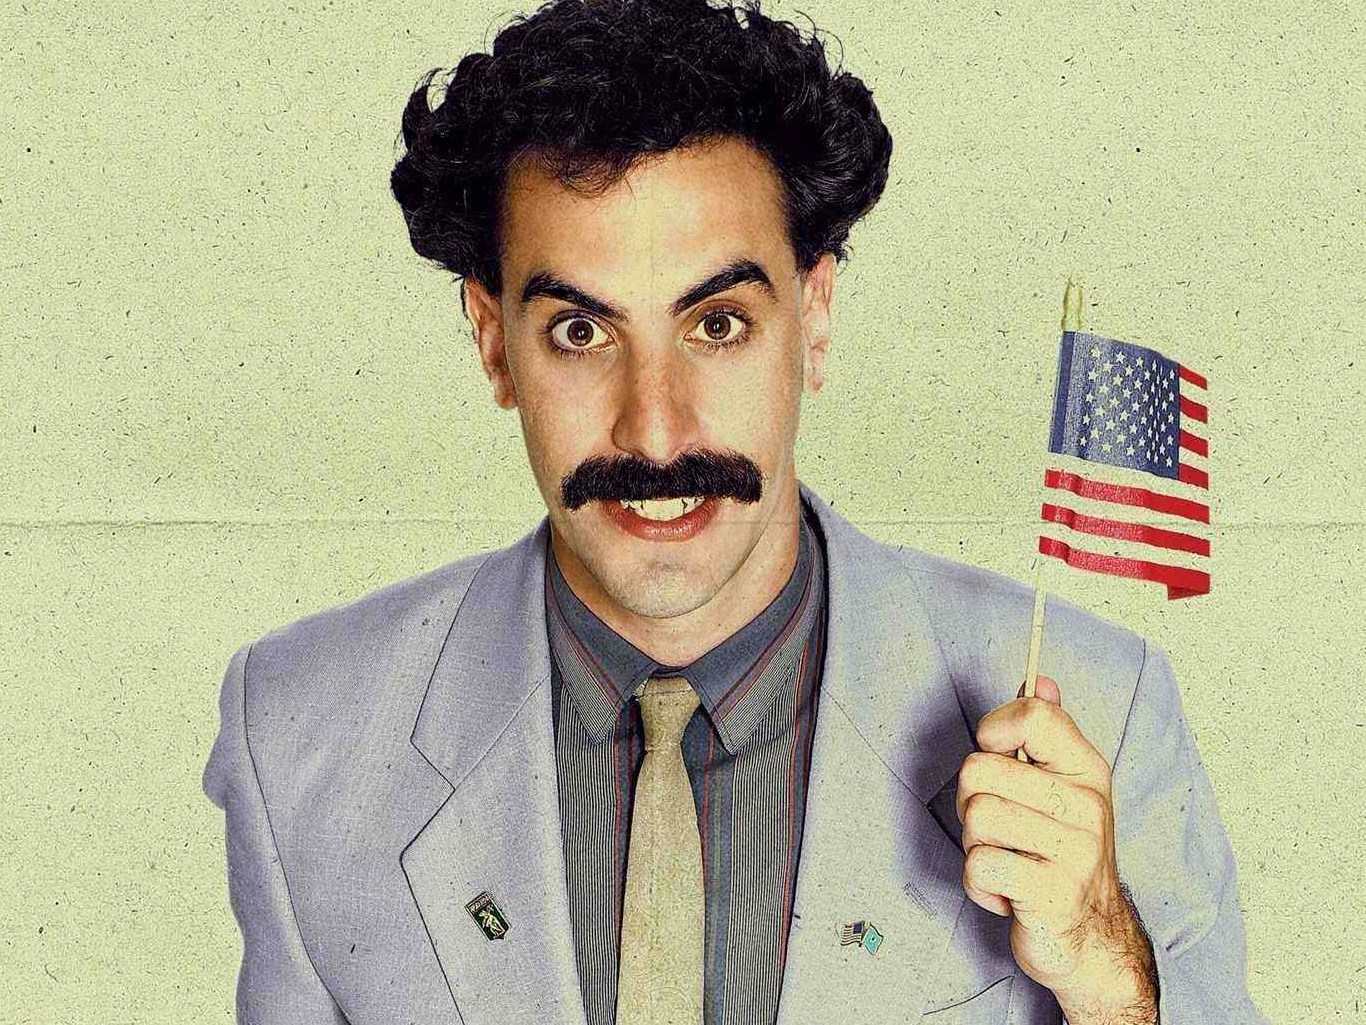 Did Borat support Trump?